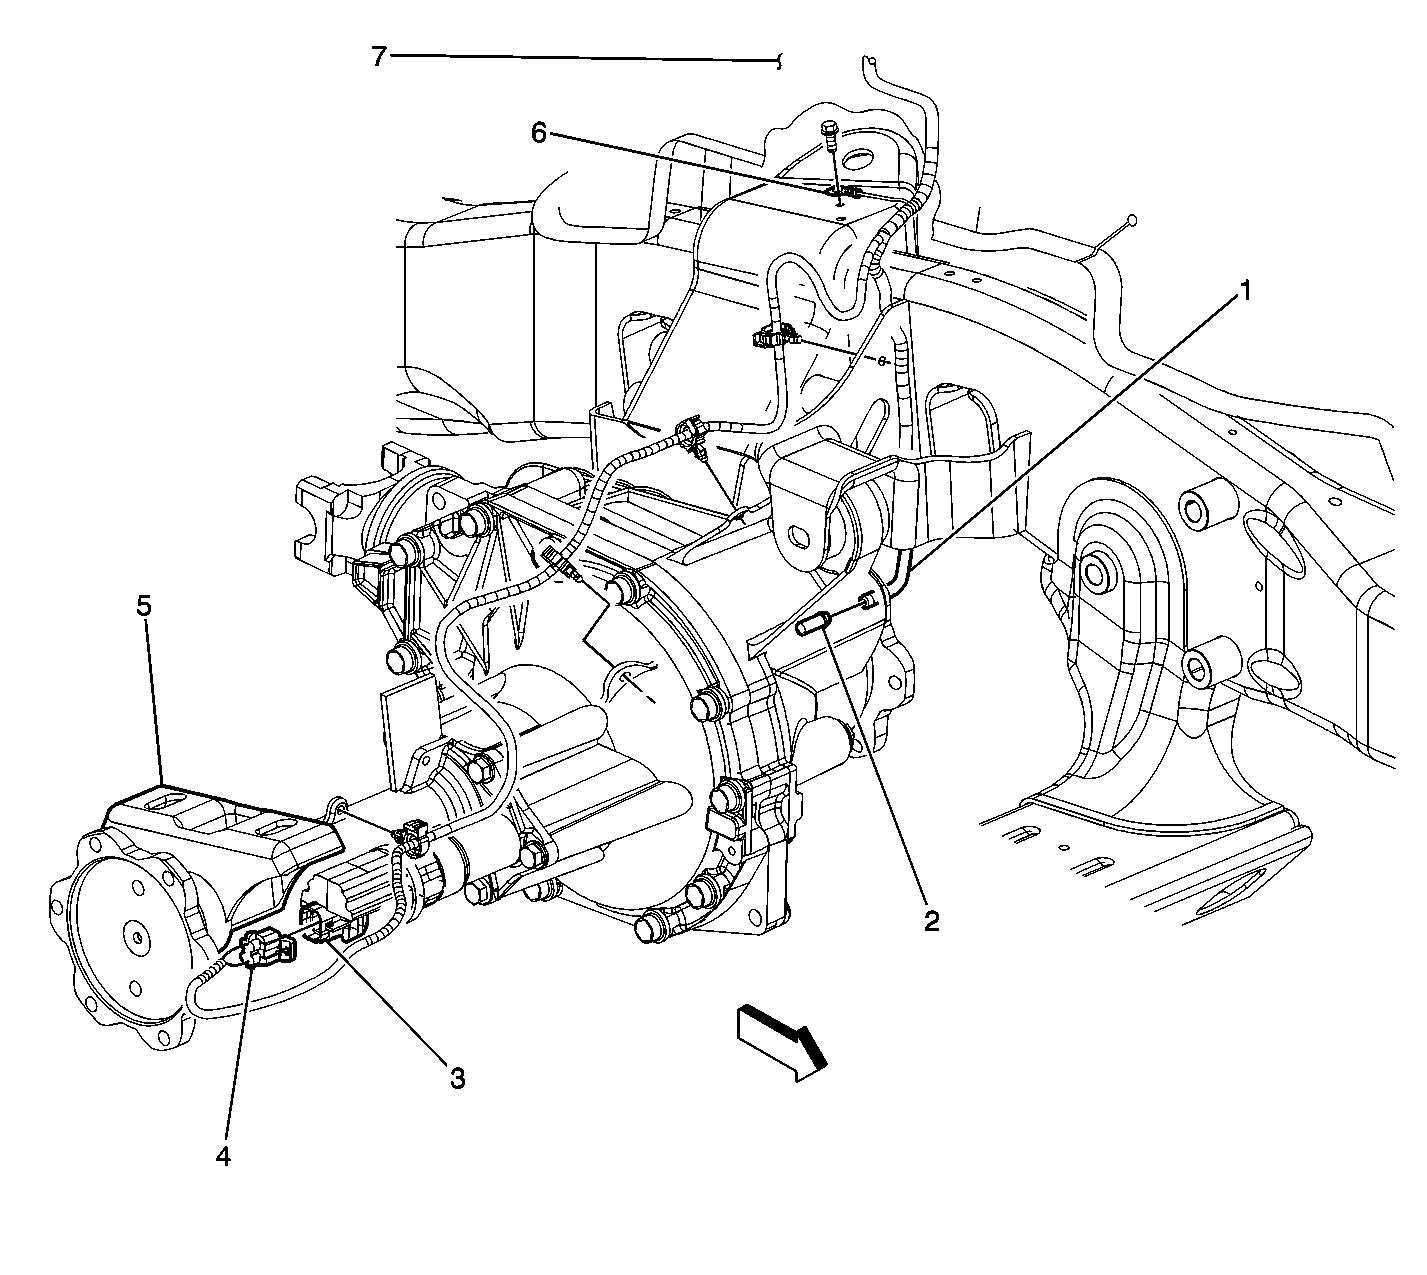 hight resolution of ground locations ref 2003 chevy transfer case diagram 2005 tahoe transfer case diagram